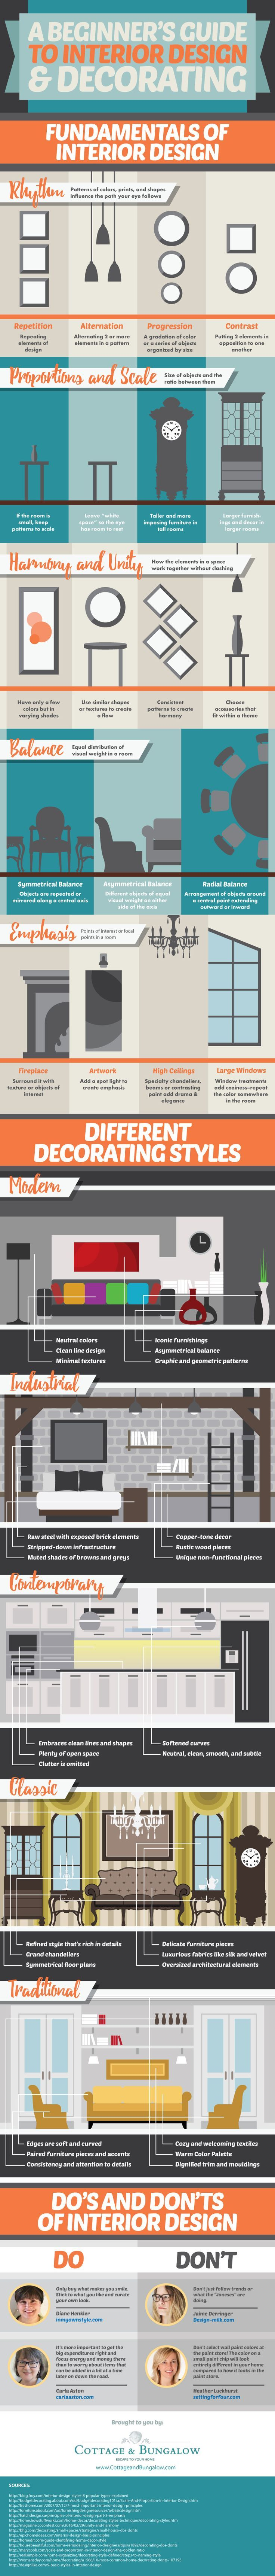 A Beginner S Guide To Interior Design And Decorating Infographic